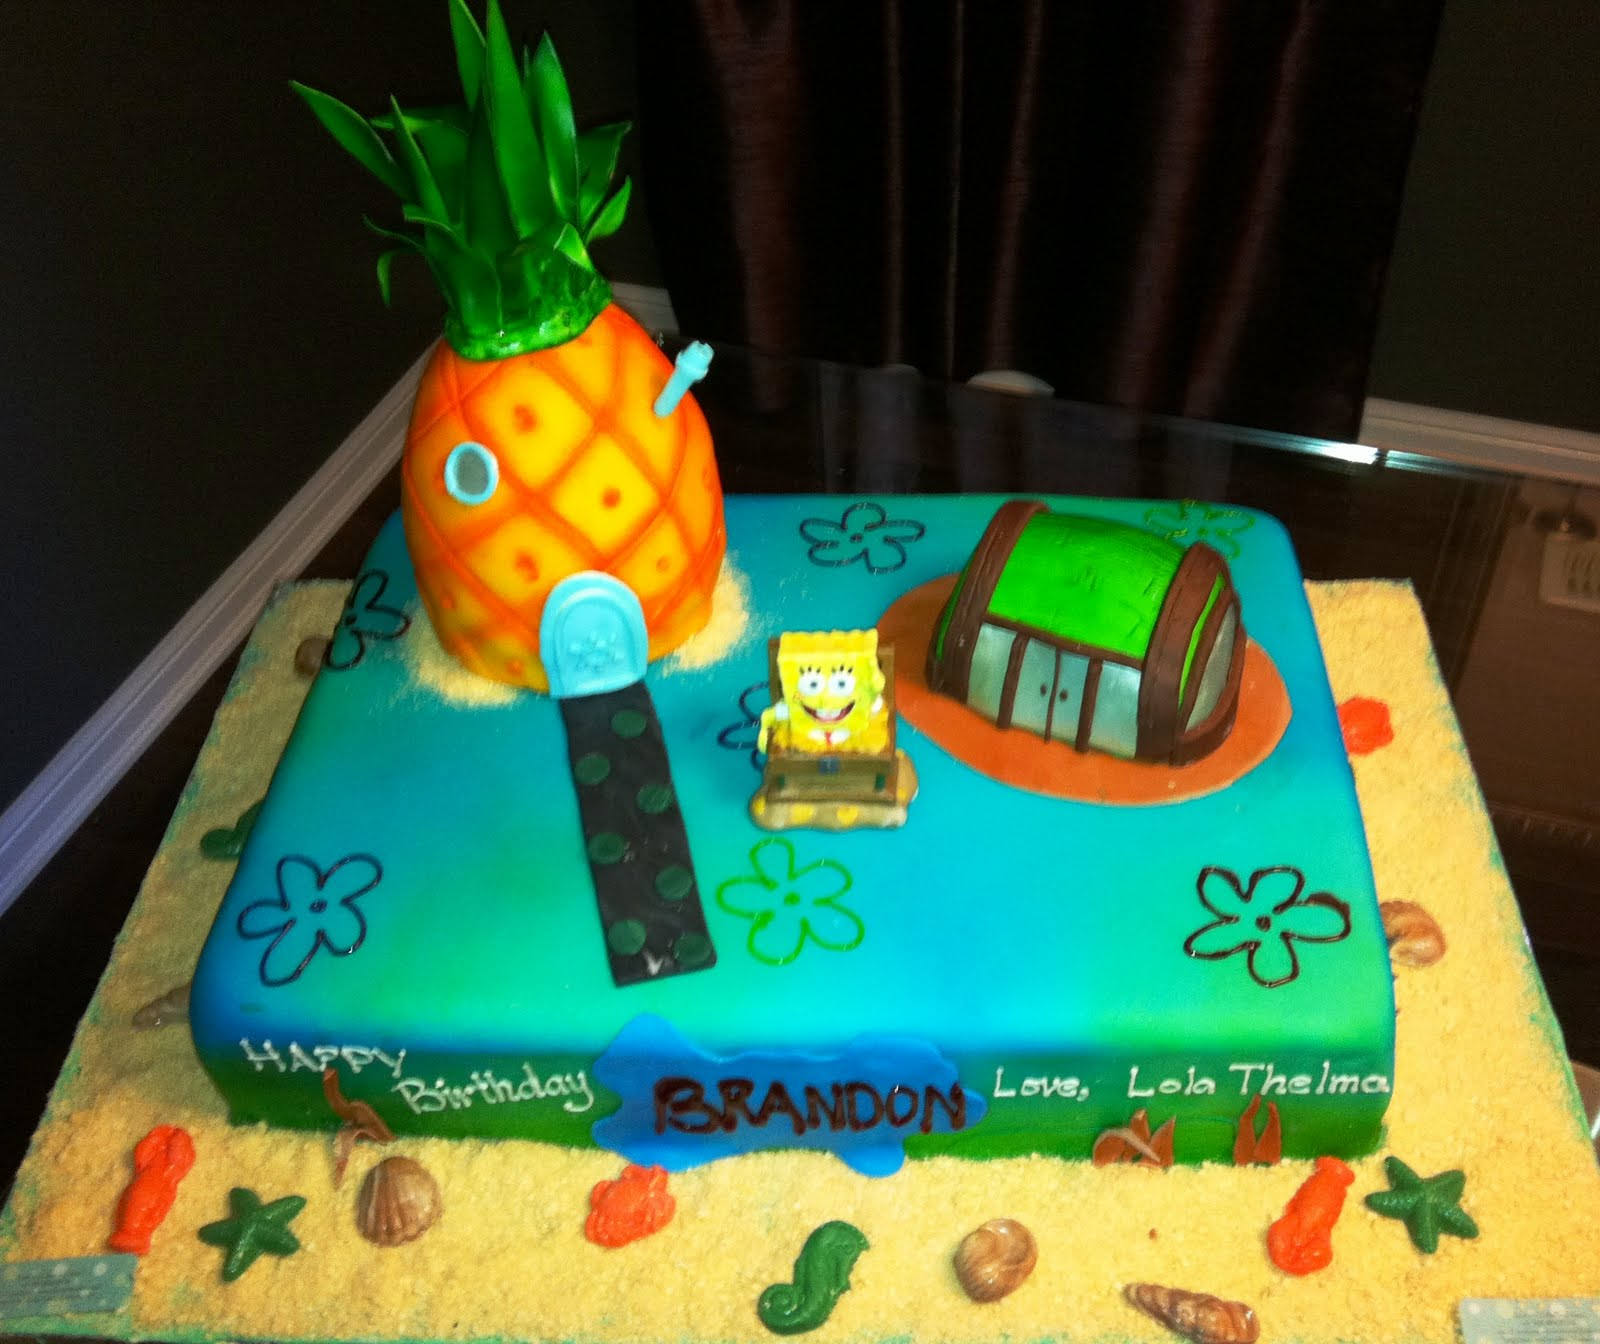 Jocelyns Wedding Cakes and More Spongebob CakeMarkham 1st